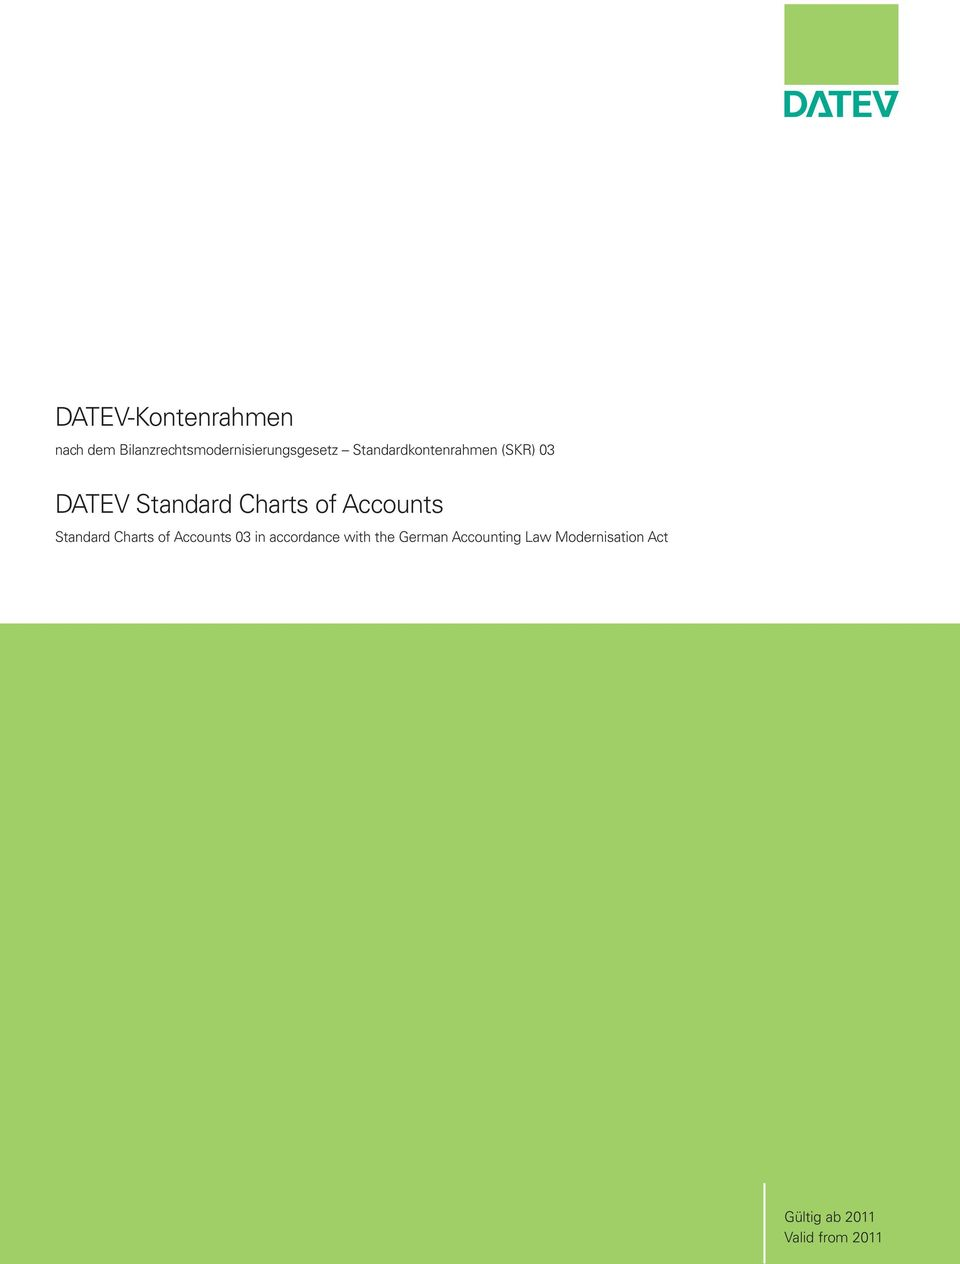 Accounts Standard Charts of Accounts 03 in accordance with the